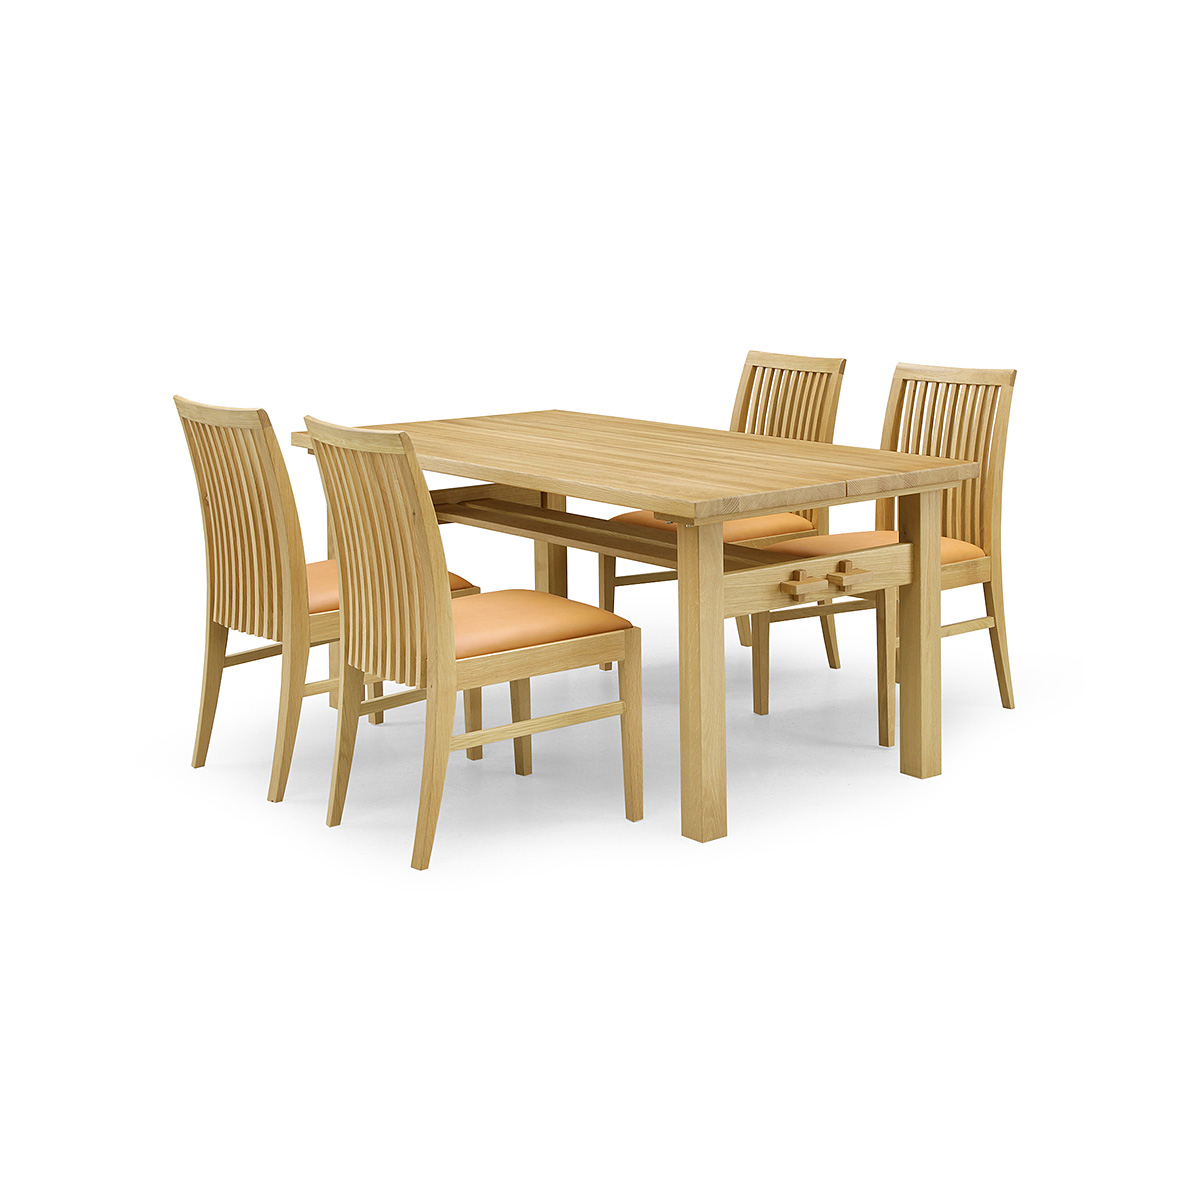 36%OFF [ダイニング5点セット] GREEN home style ROSE MARY DINING TABLE 150 + SIDE CHAIR C (グリーン ホームスタイル ローズマリー ダイニングテーブル150 サイドチェアC) 岩倉榮利 (オーク材)【同梱不可】【店頭受取対応商品】